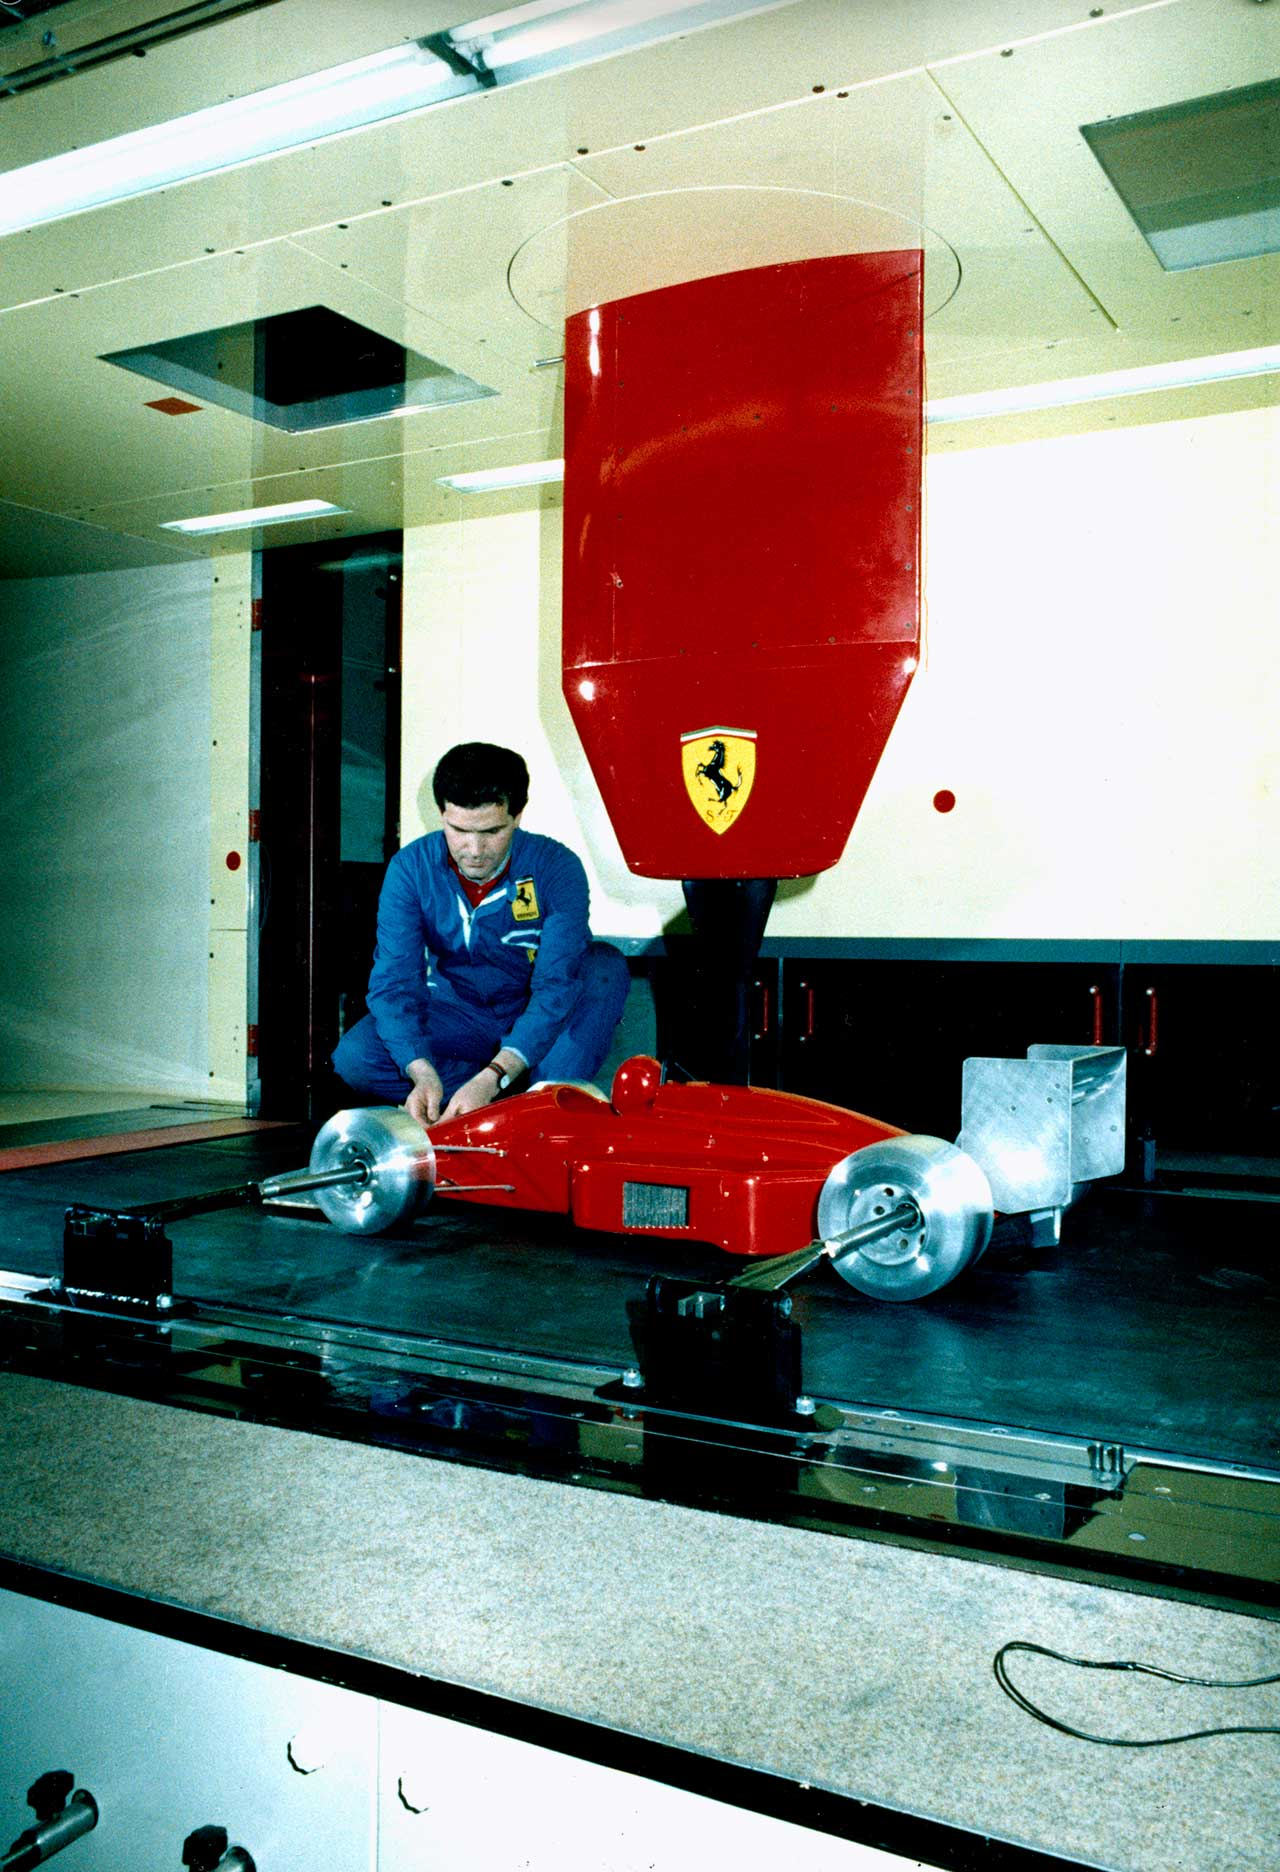 The new Wind Gallery for Aerodynamic Tests with 1-3 scale models. Photo courtesy of Ferrari.